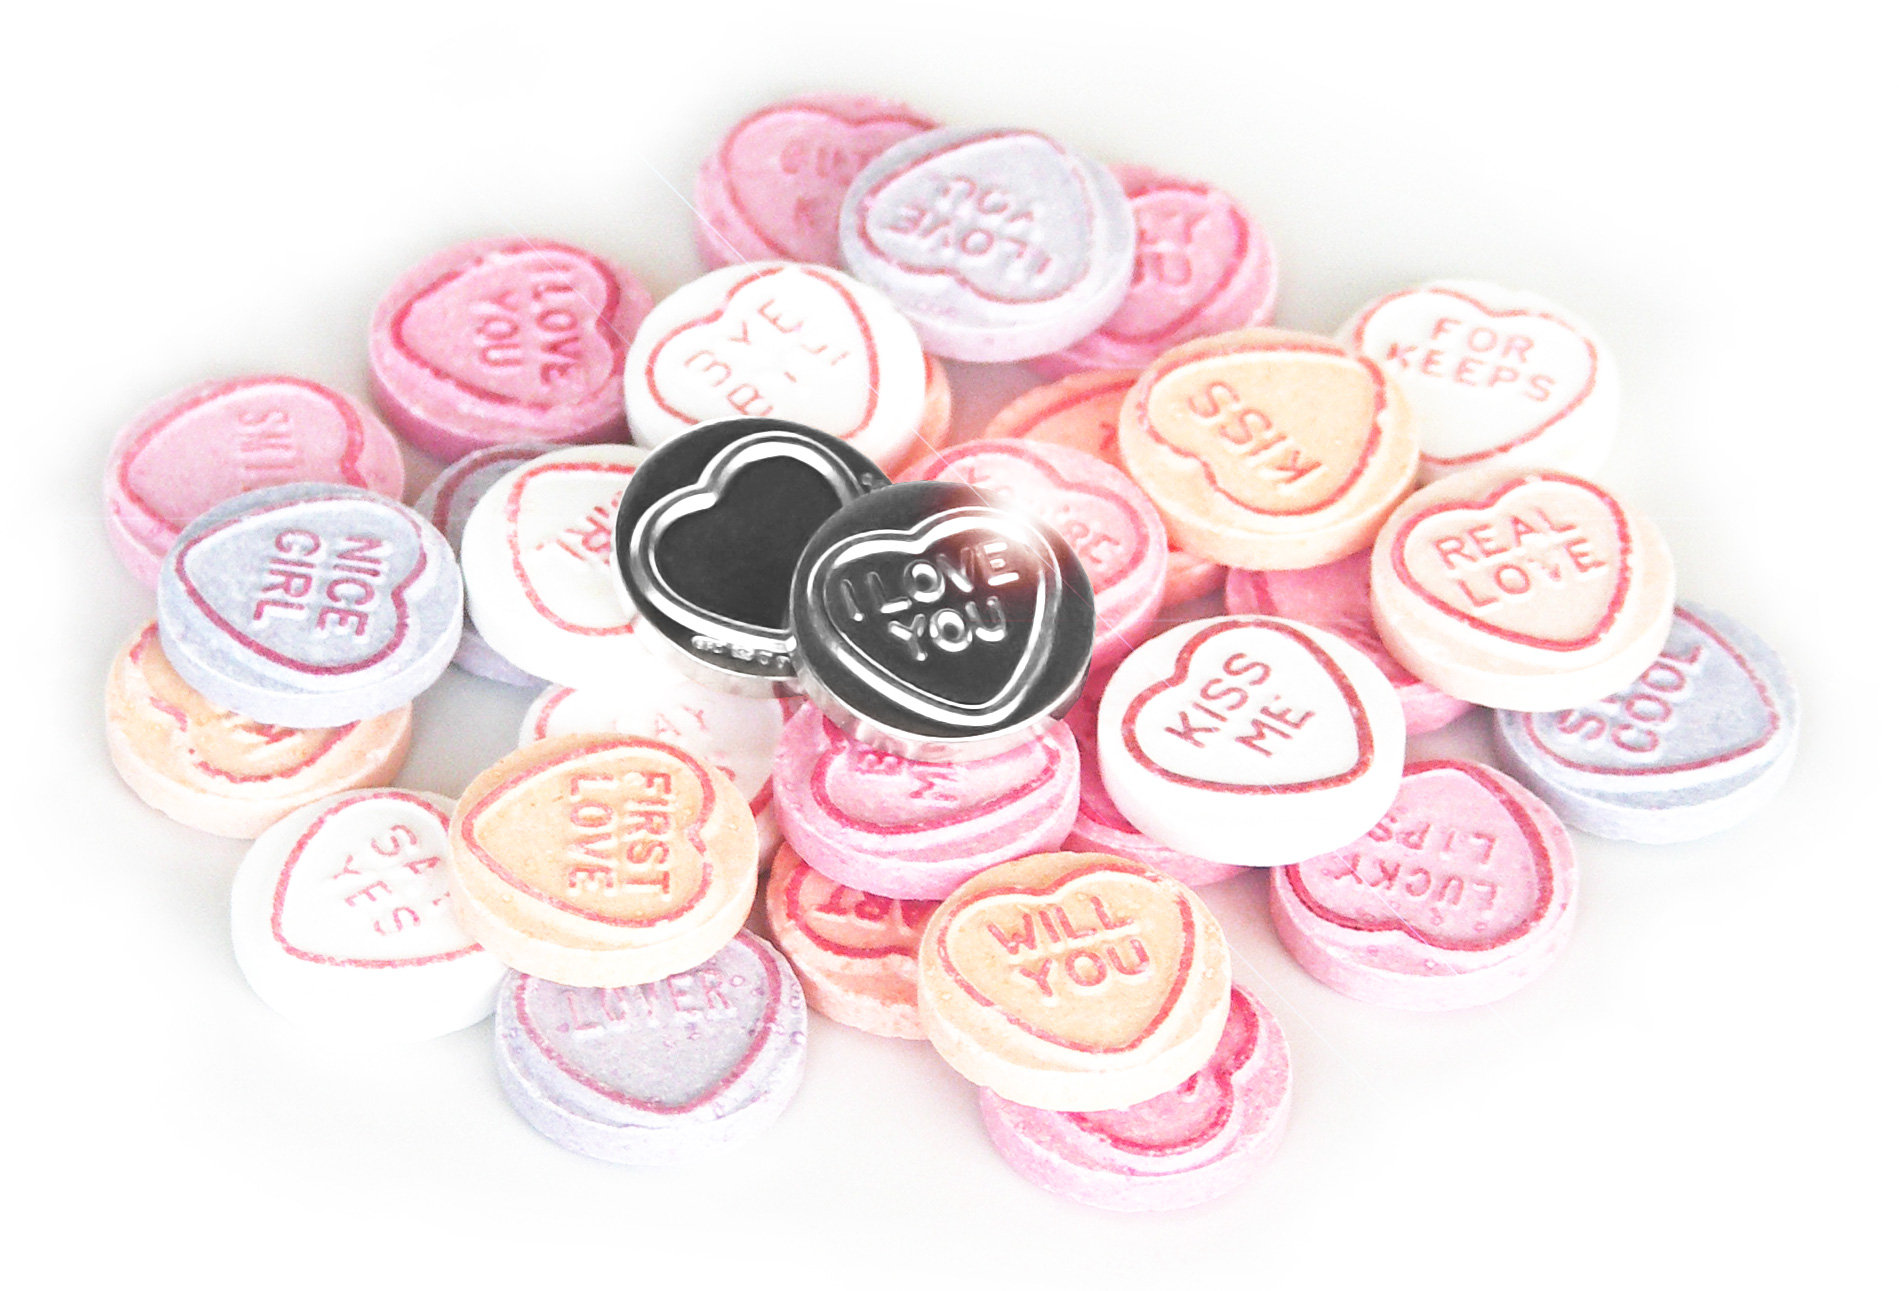 Silver Love Hearts Content Gallery Silver Replica Of The Classic